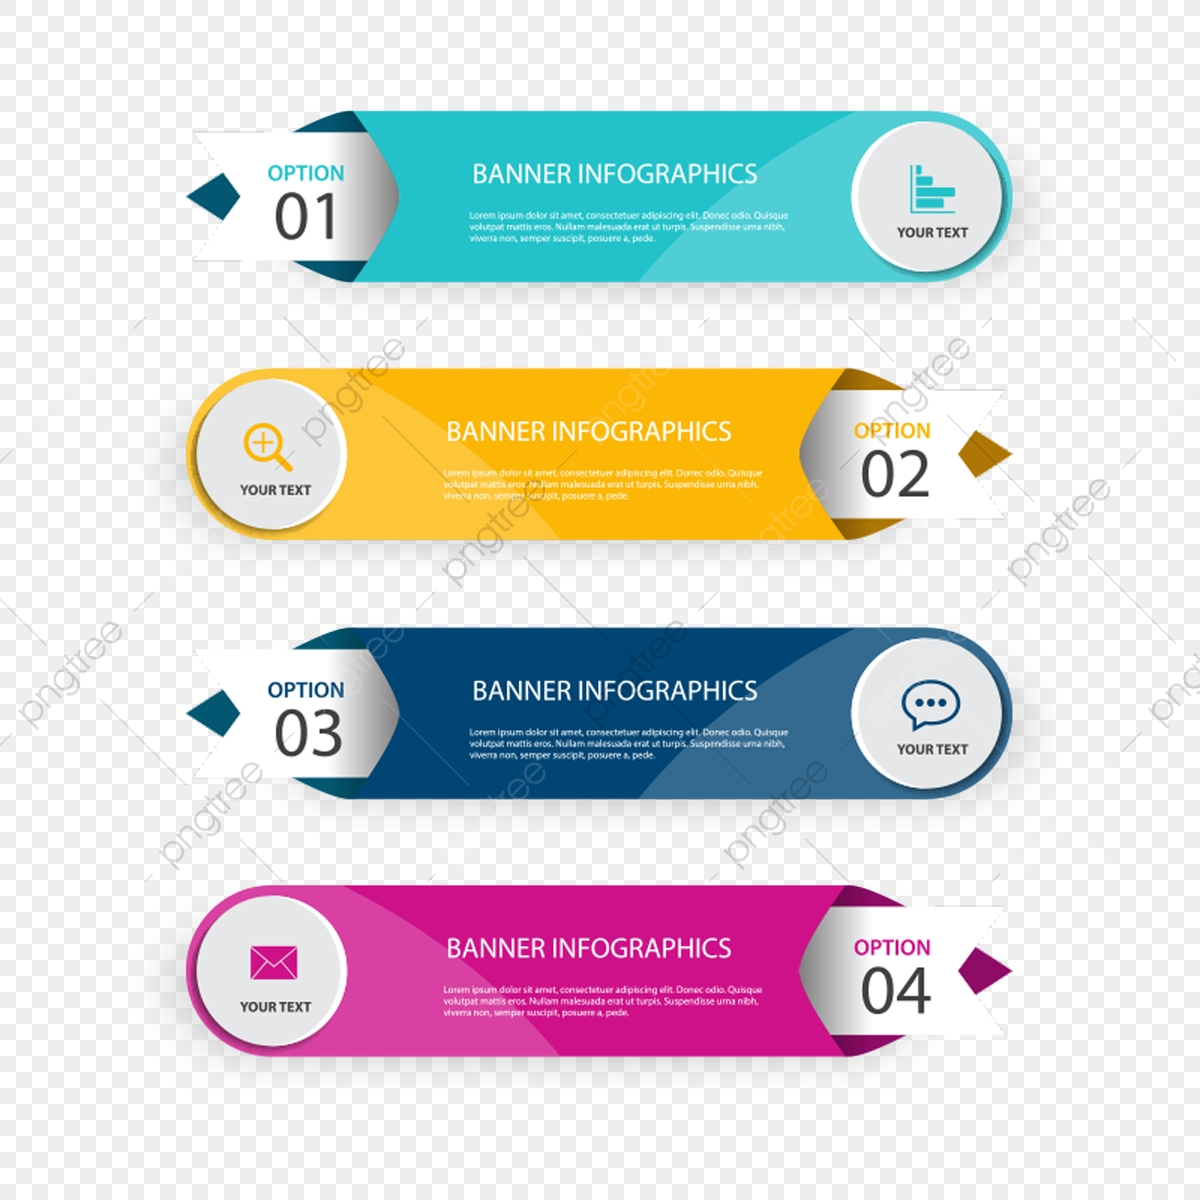 Paper Infographic Banners, Infographics, Infographic